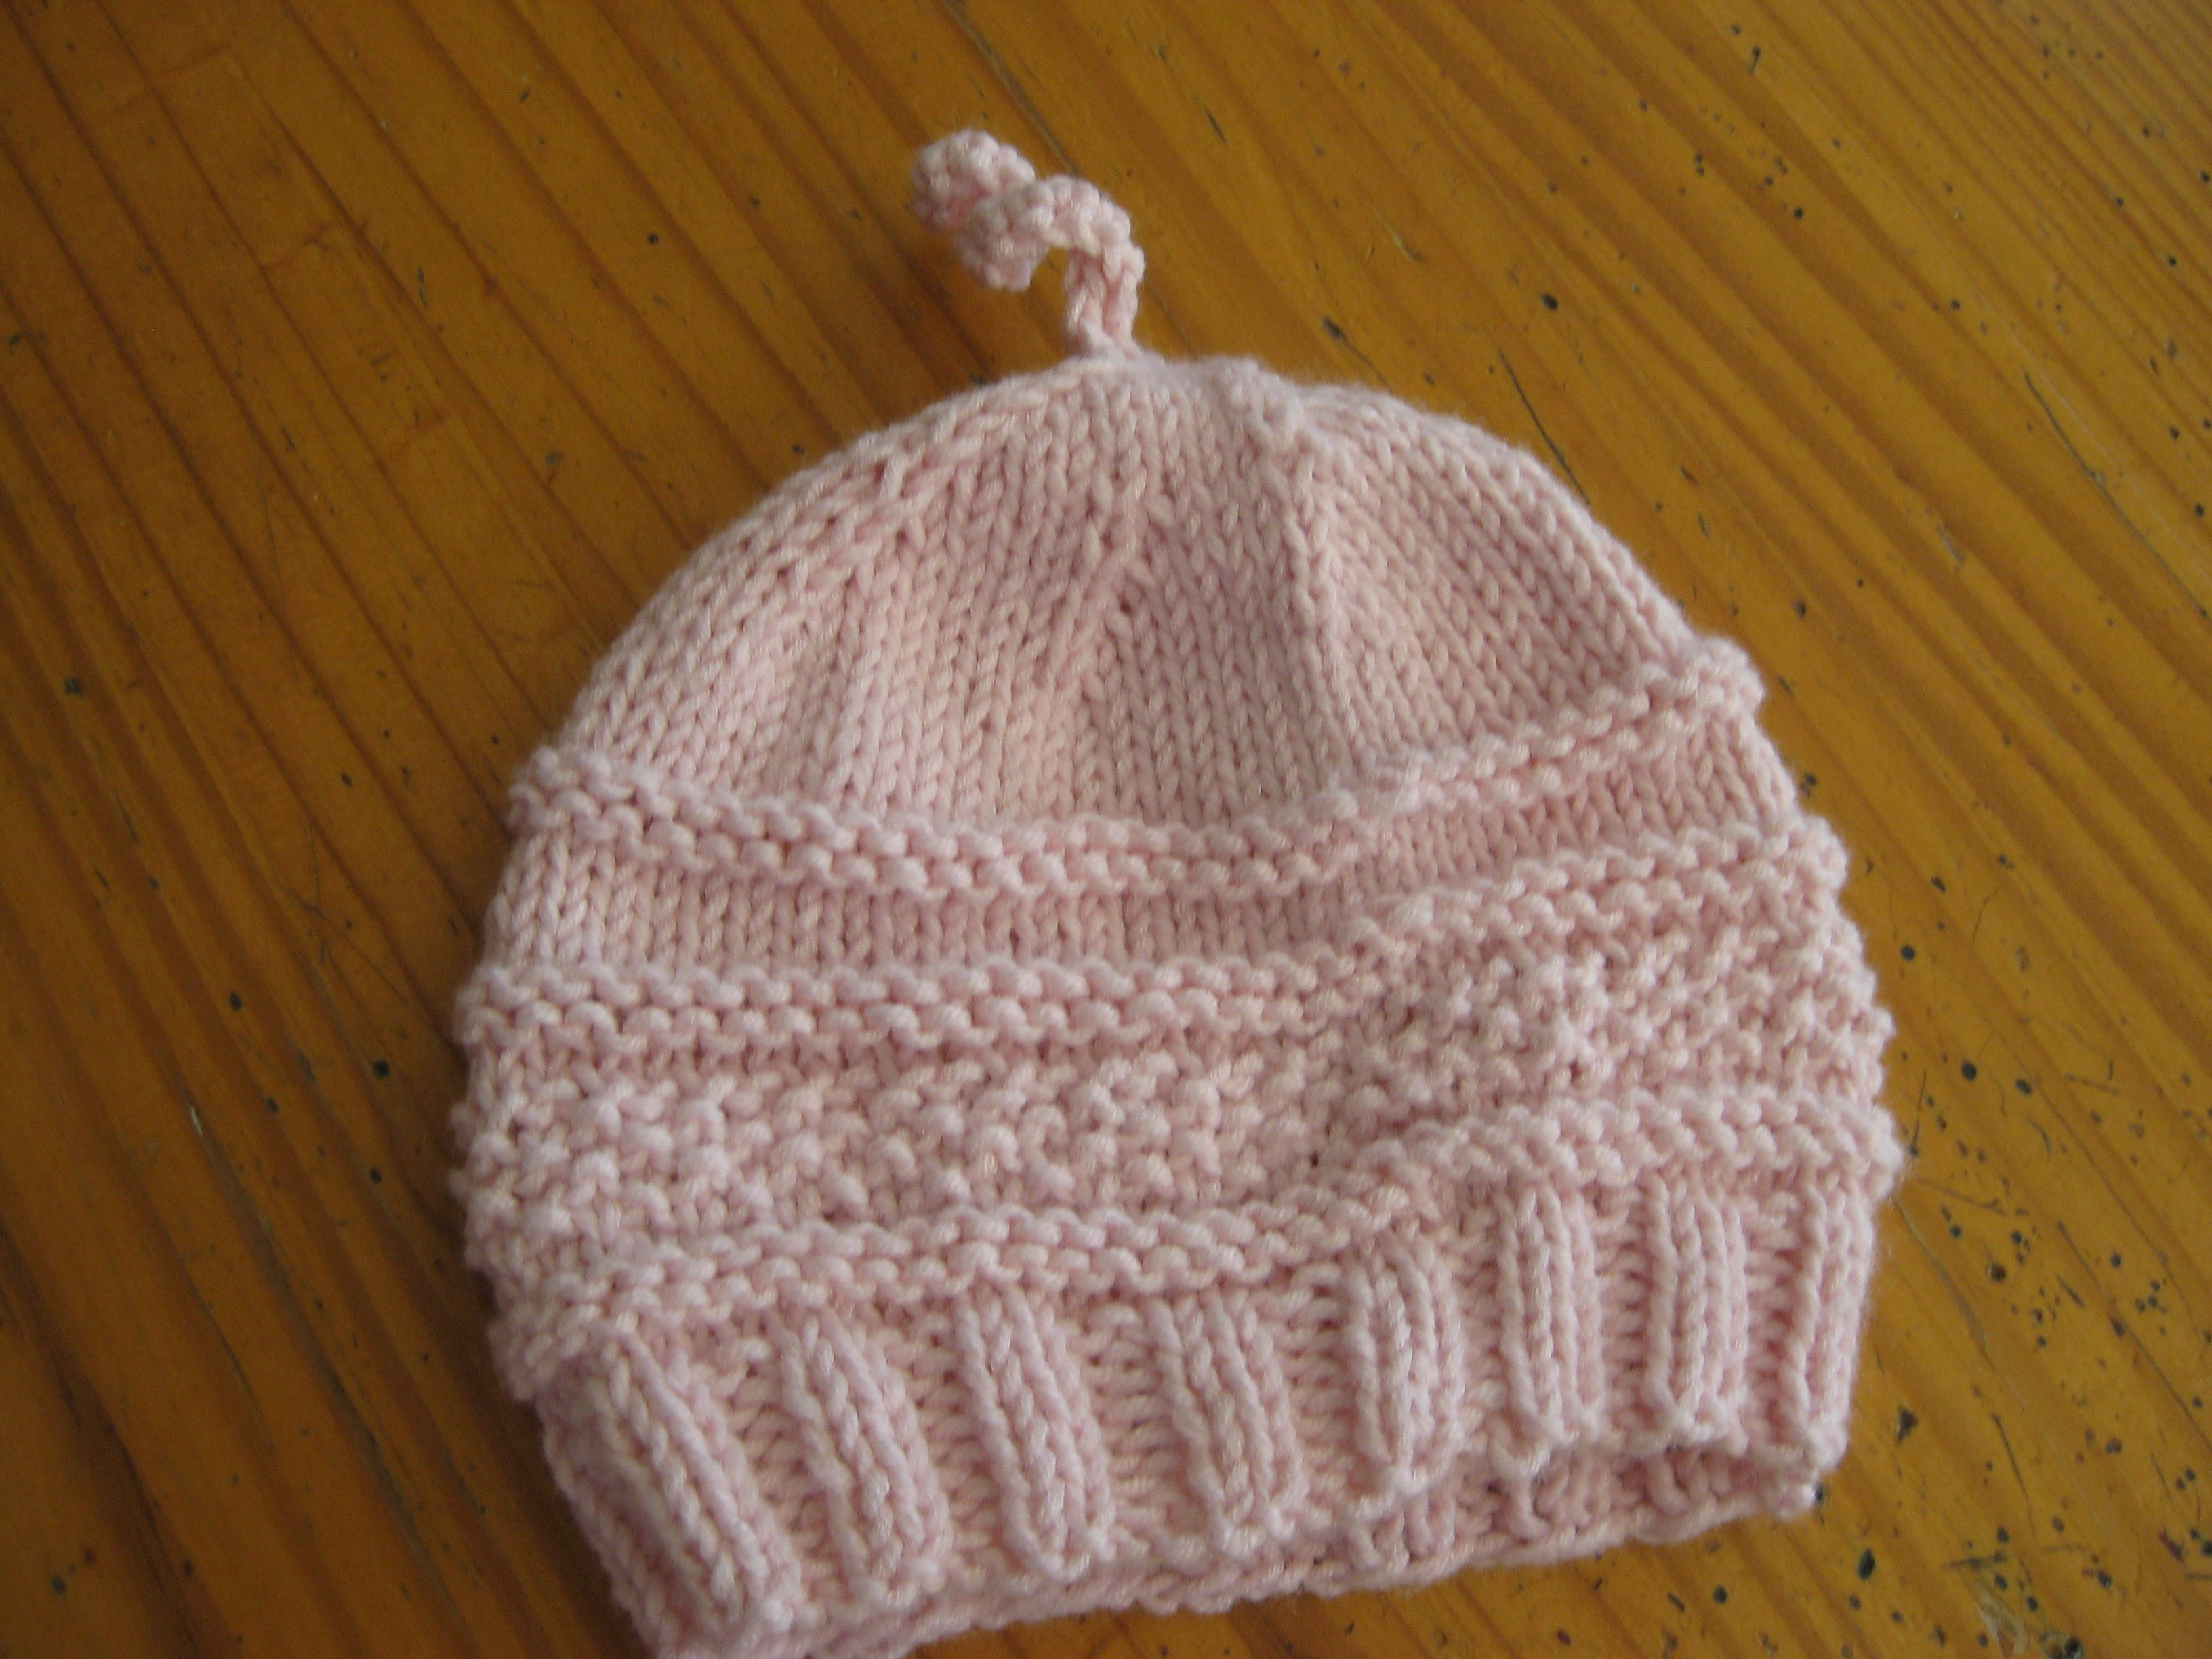 Simply Adorable: 15 Super-Cute Knitted Newborn Hats | Baby hat ...